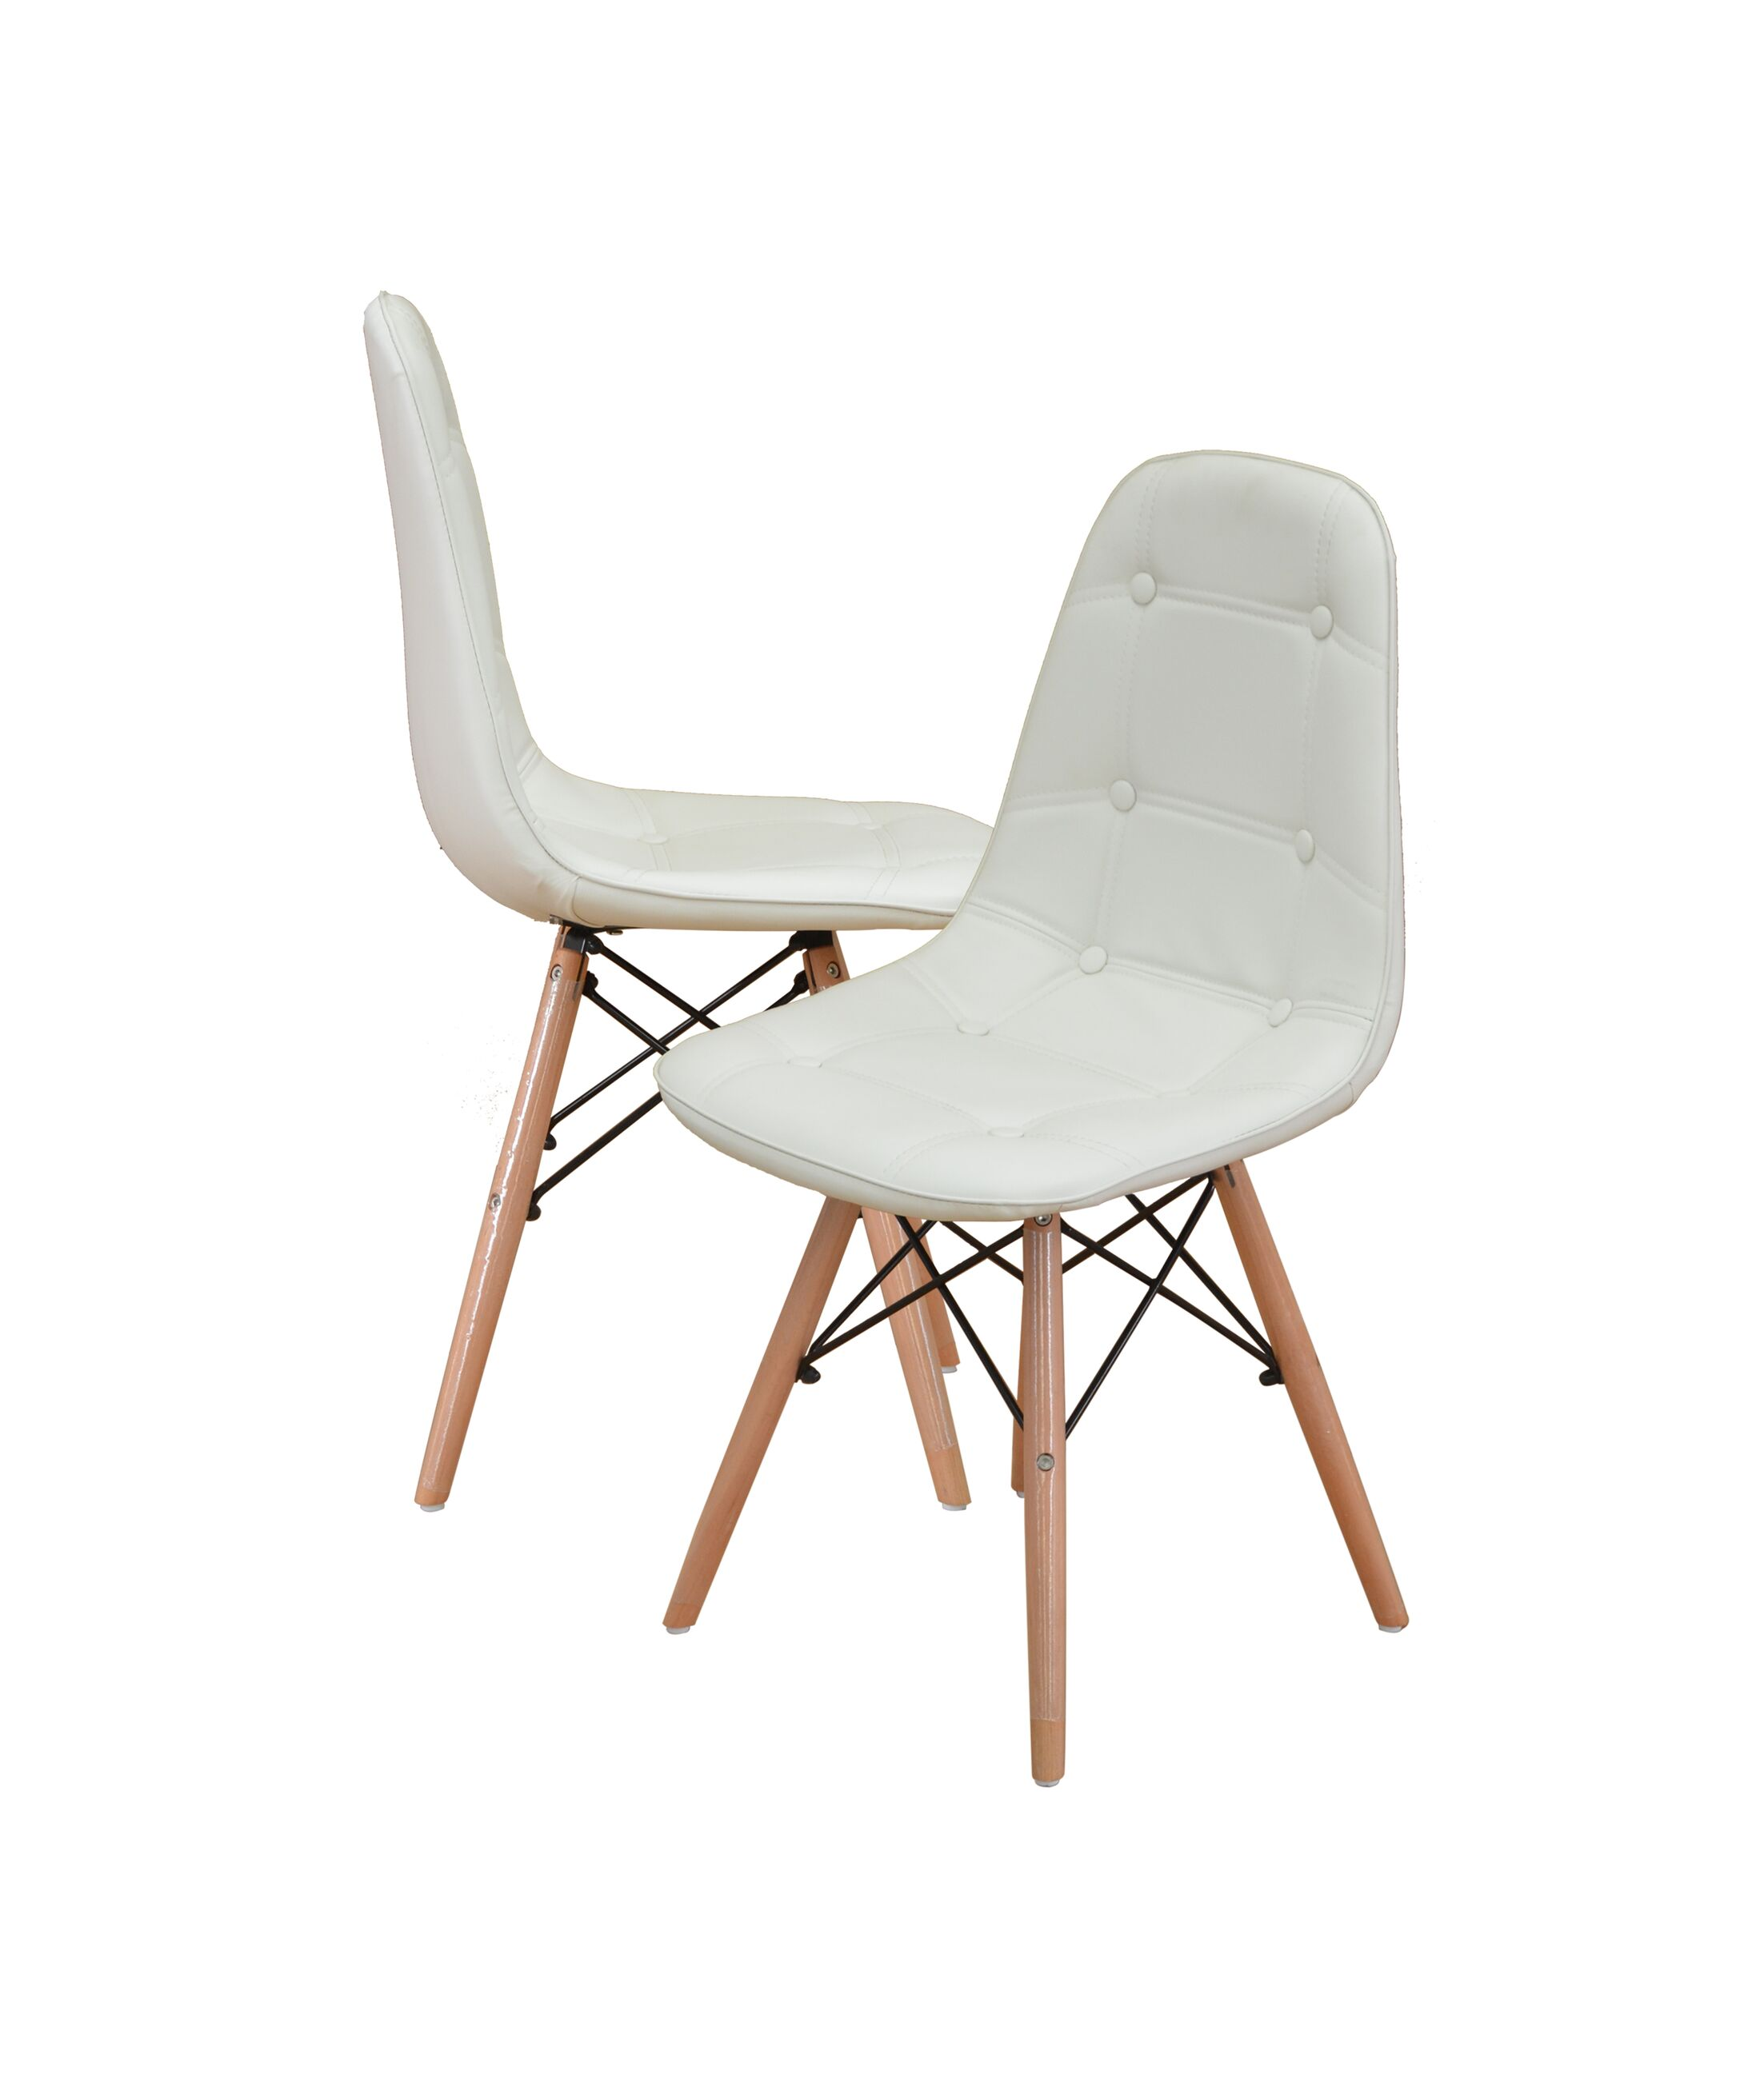 Modern Tufted Wood Legs Side Chair Upholstery: White